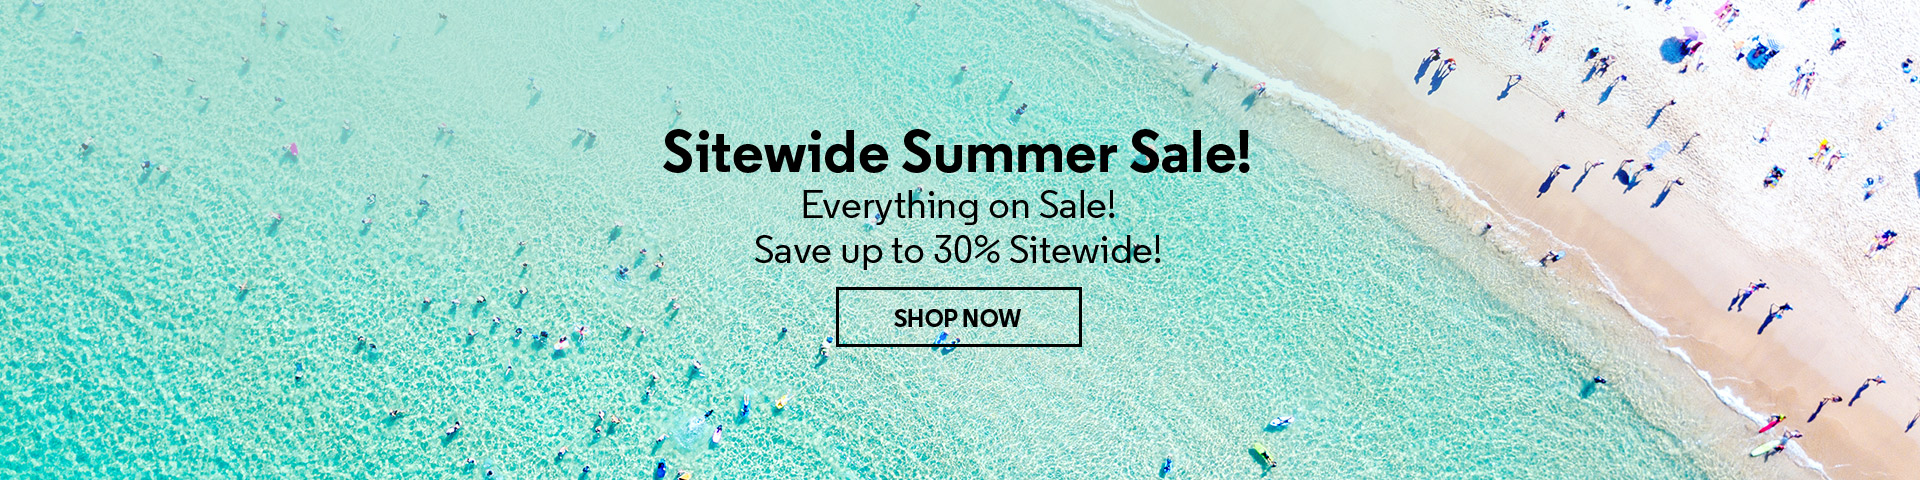 Sitewide Summer Sale! Everything on Sale! Save up to 30% Sitewide!